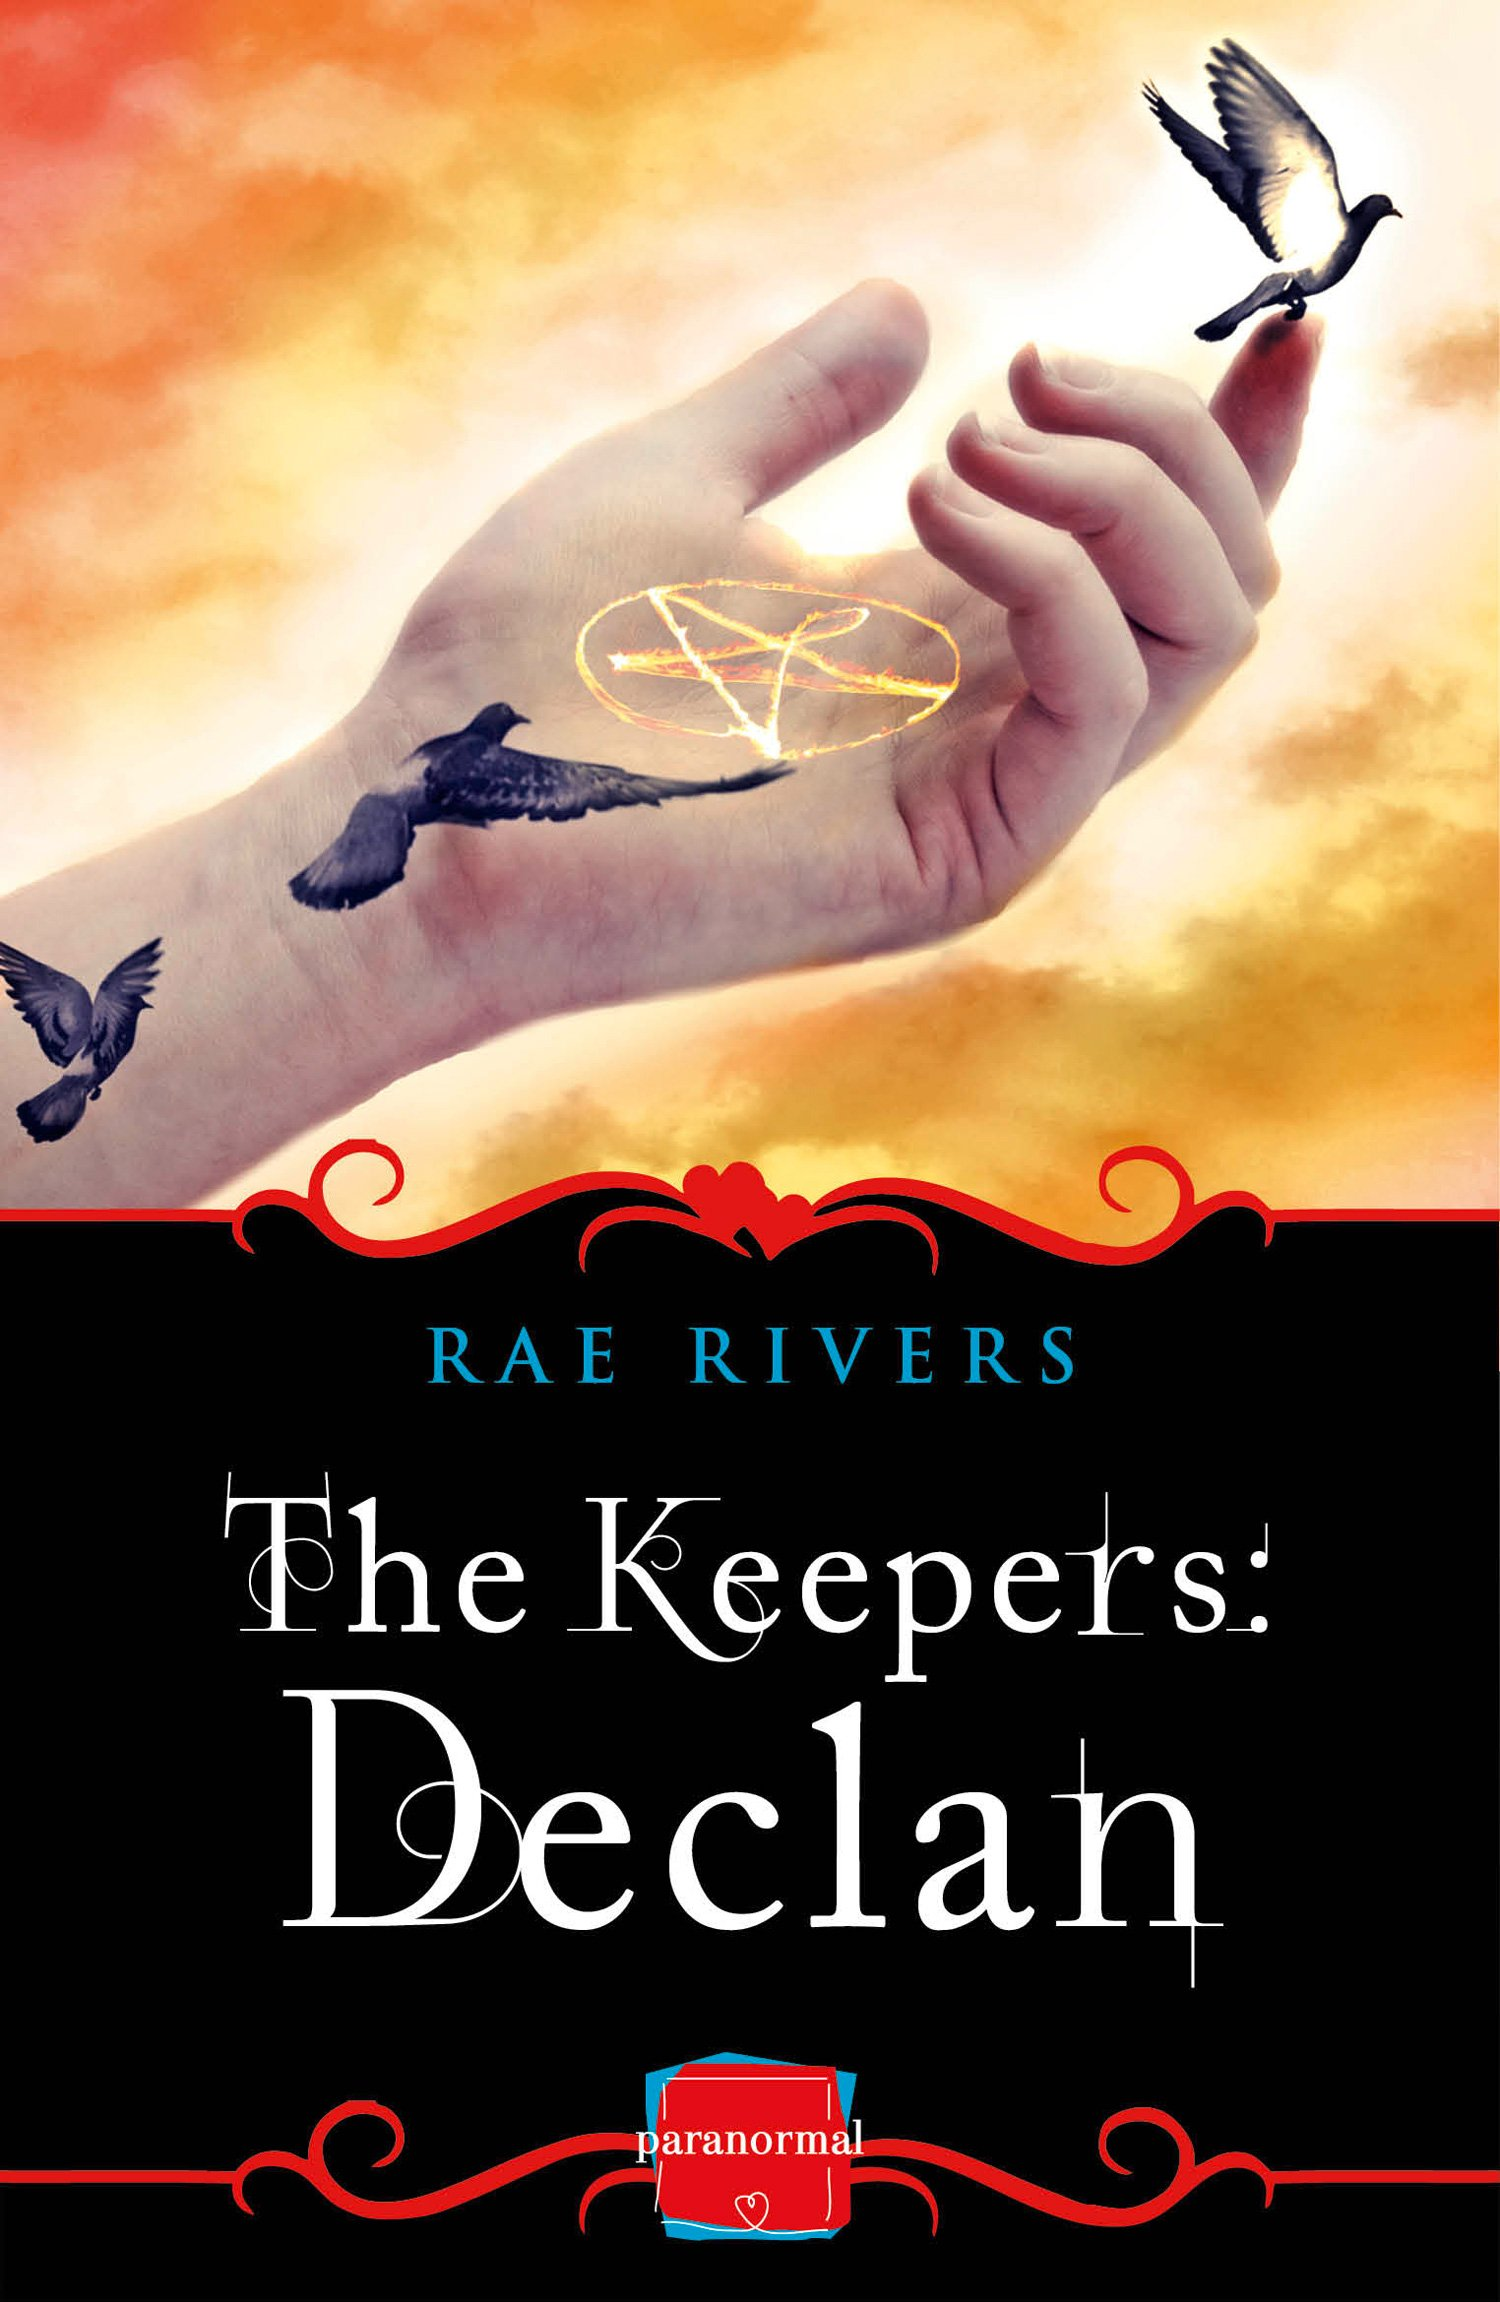 The Keepers: Declan